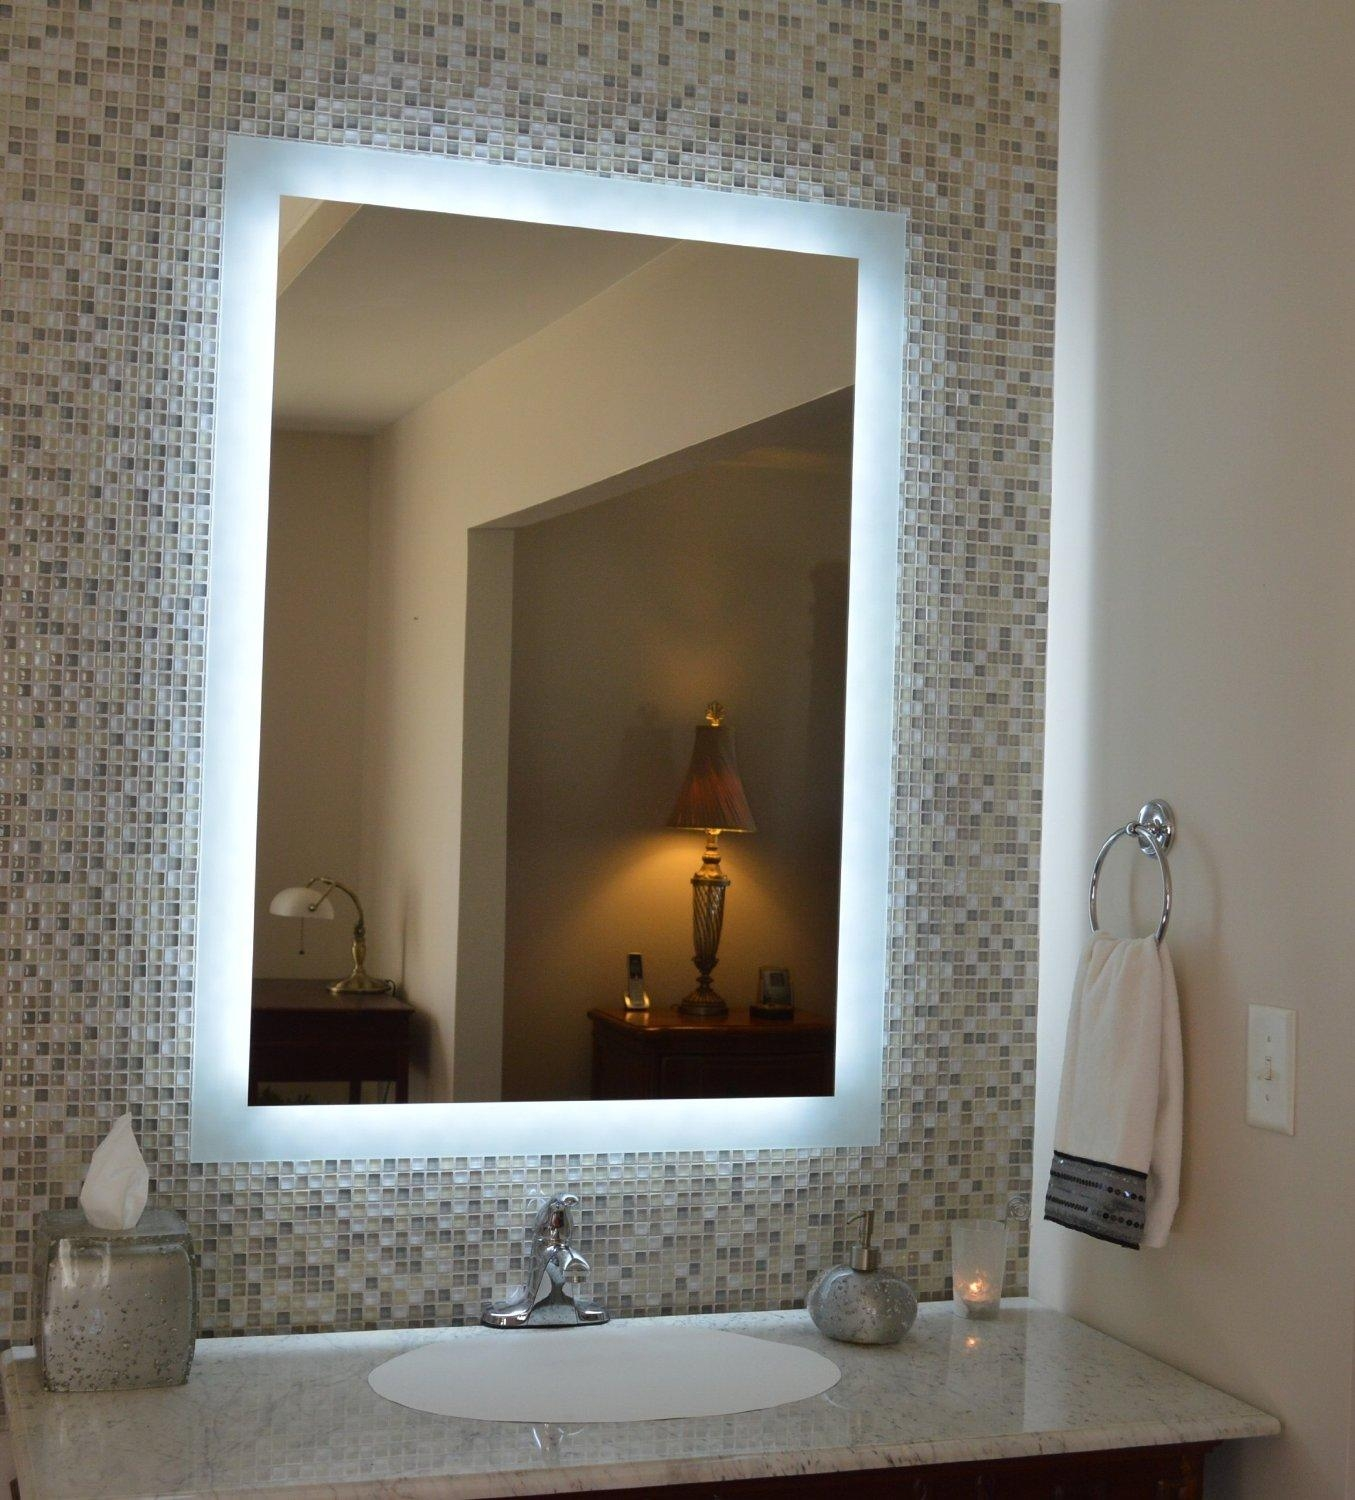 Lighted Bathroom Wall Mirror Large: 20 Inspirations Bathroom Wall Mirrors With Lights